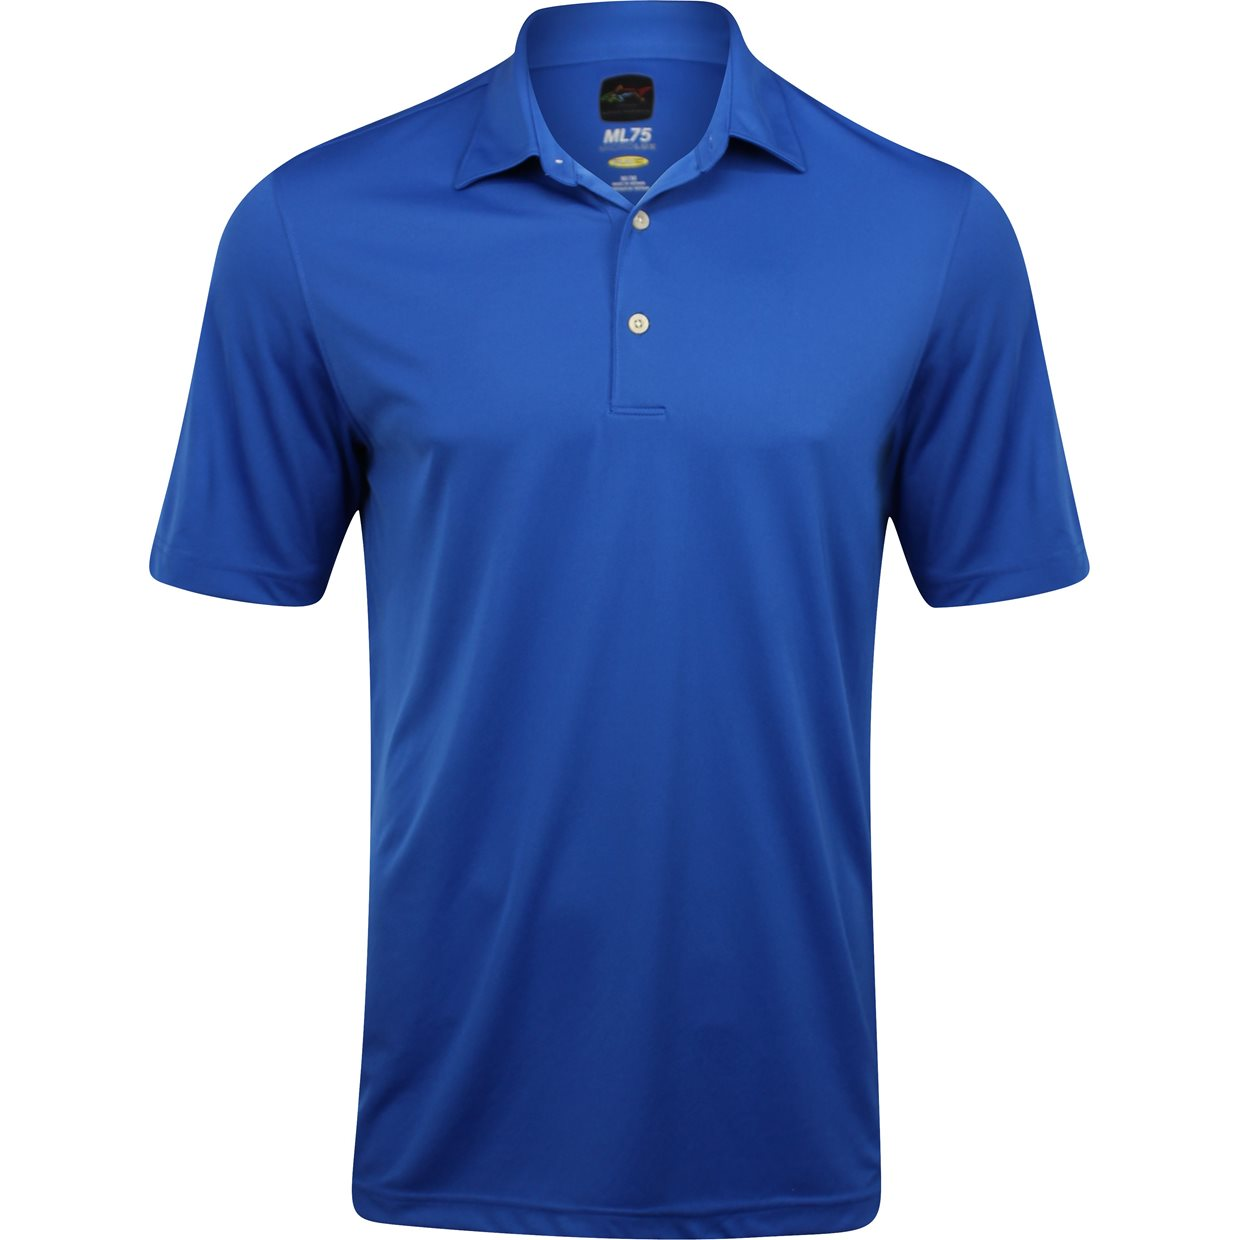 Greg Norman Polo Shirts Costco Bcd Tofu House